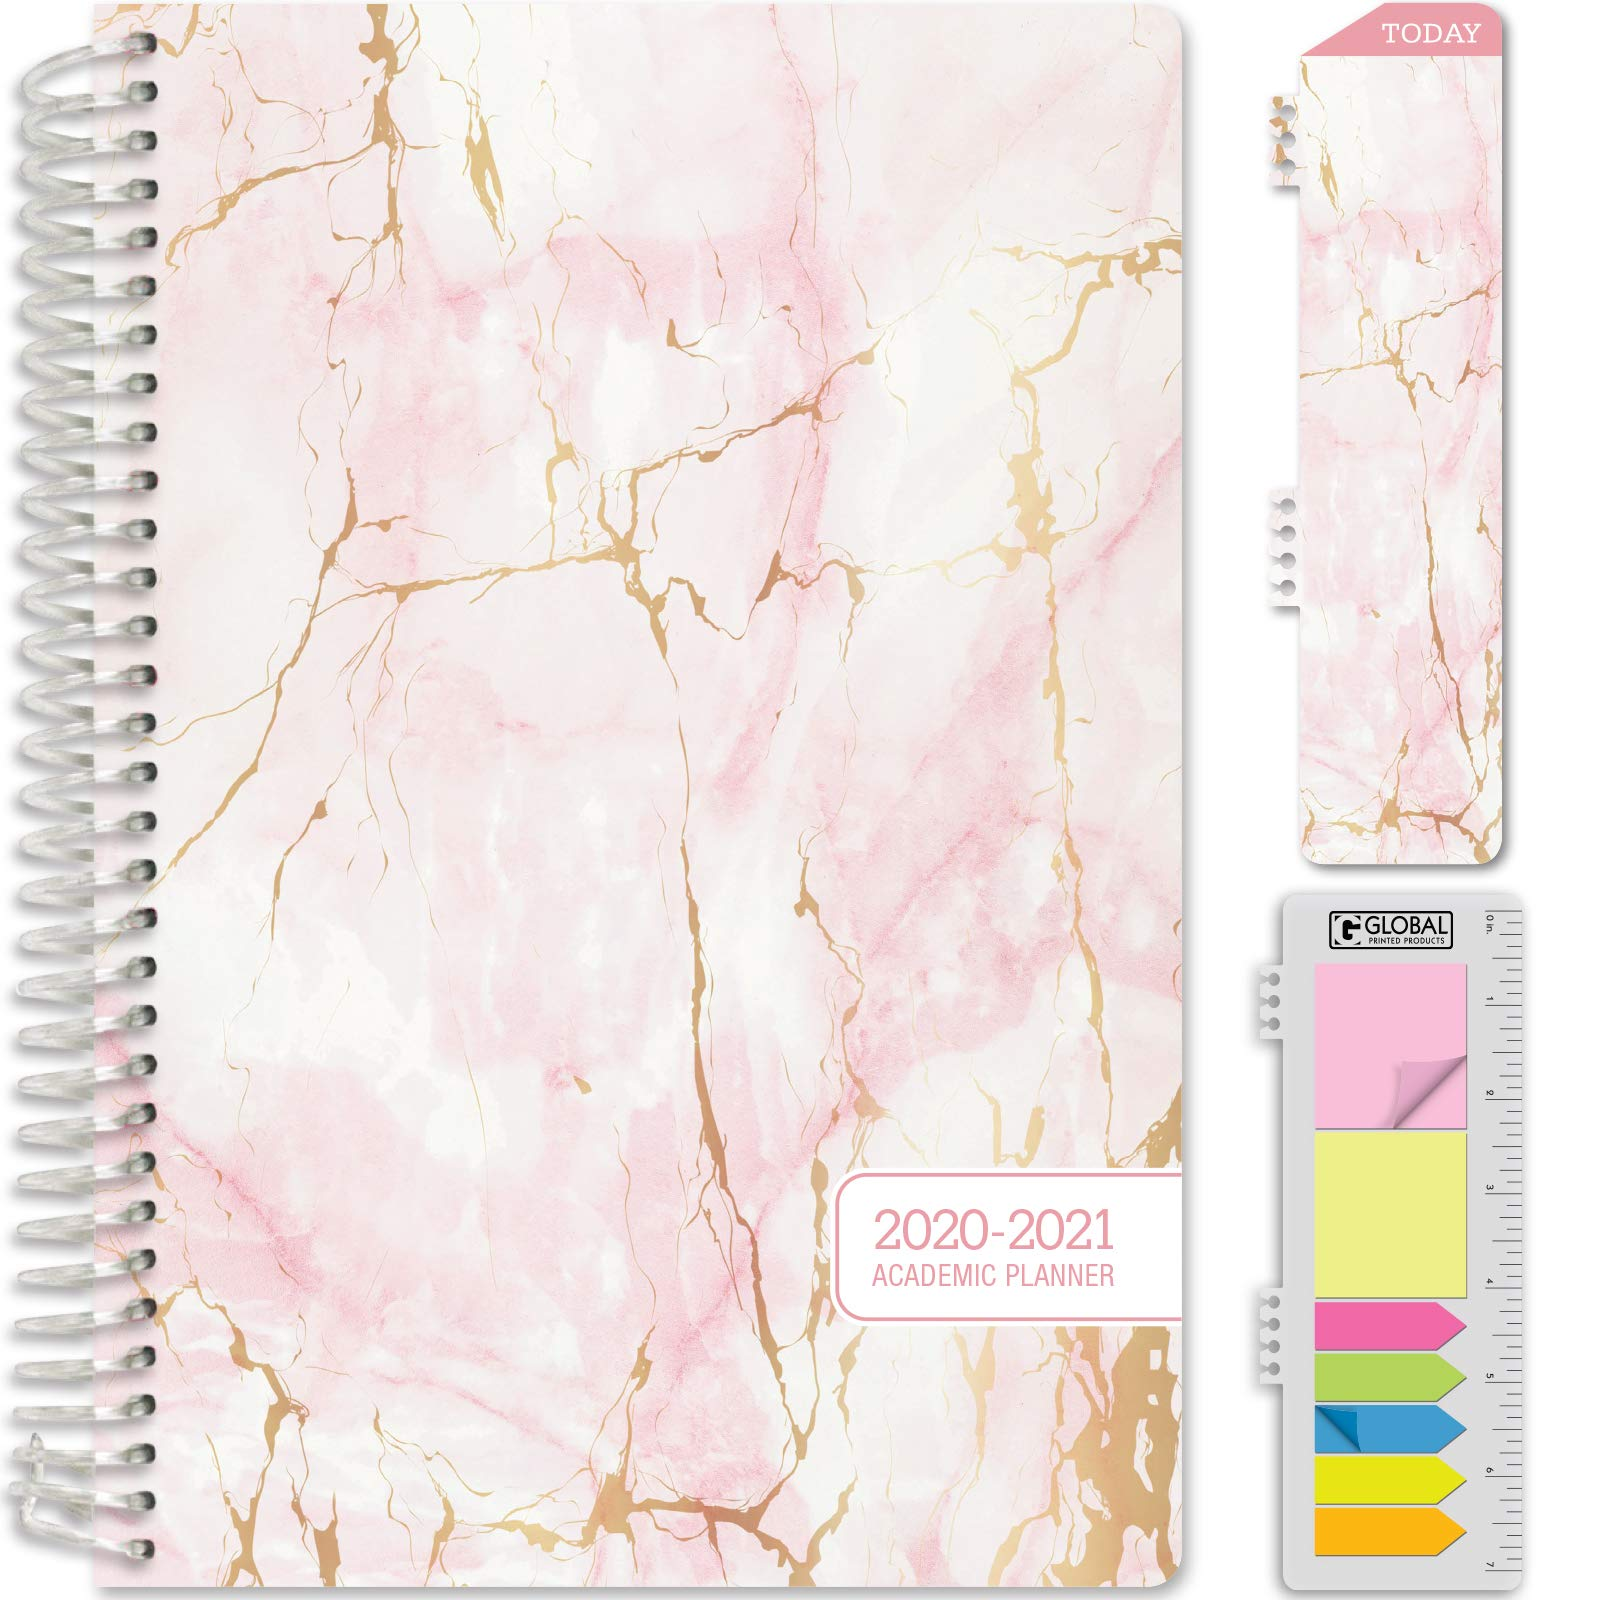 """HARDCOVER Academic Year 2020-2021 Planner: (June 2020 Through July 2021) 5.5""""x8"""" Daily Weekly Monthly Planner Yearly Agenda. Bonus Bookmark, Pocket Folder and Sticky Note Set (Pink Marble)"""